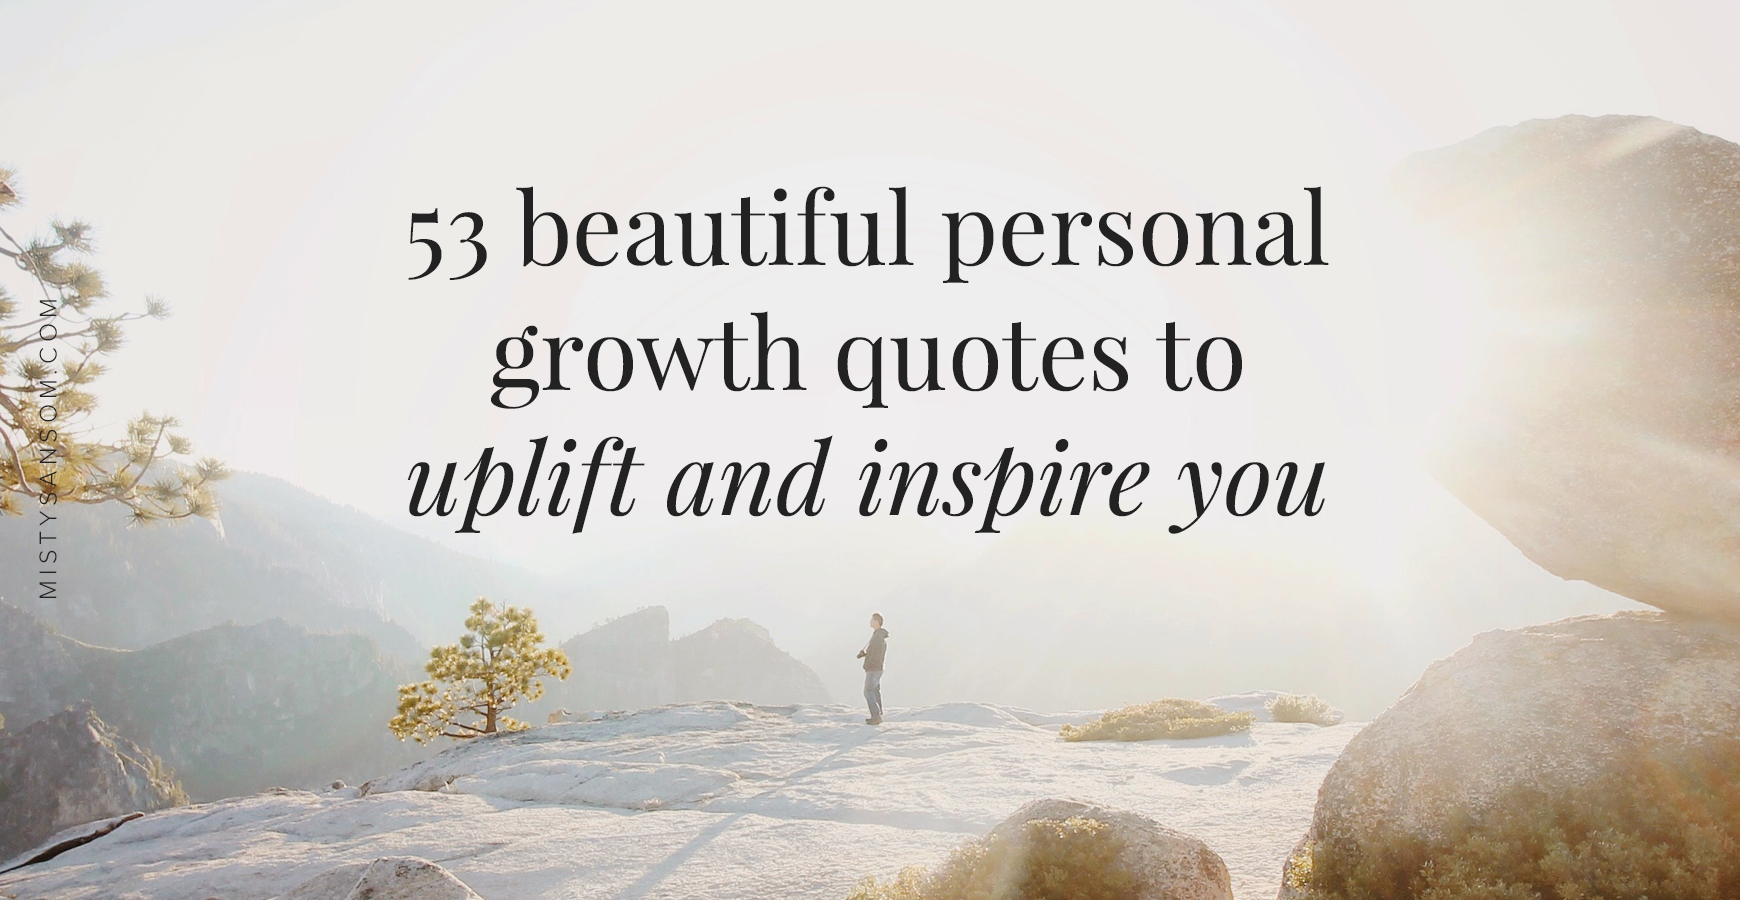 53 Beautiful Personal Growth Quotes to Live By — Misty Sansom